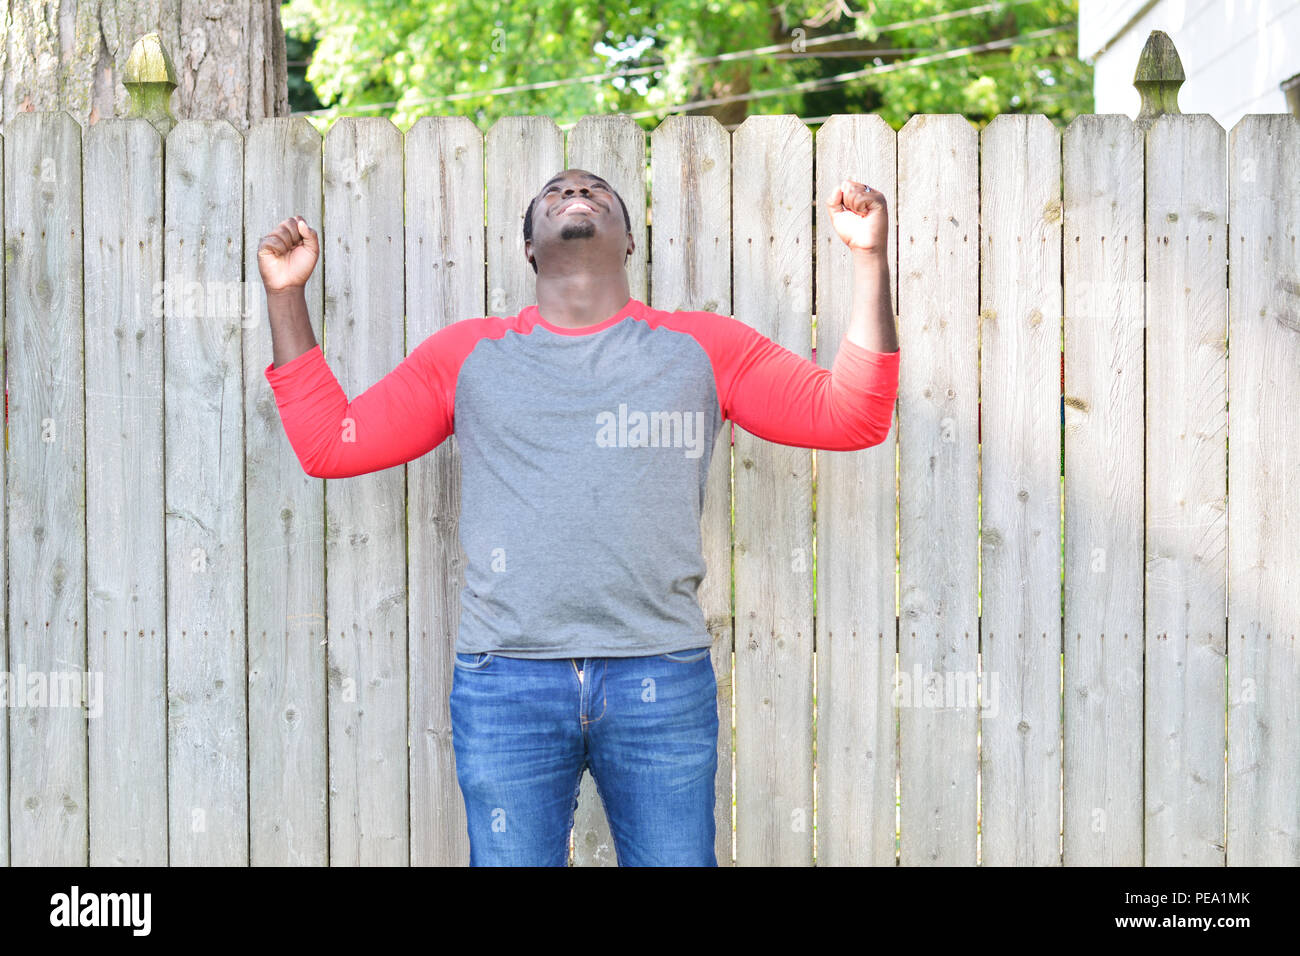 Celebrating black man in front of wooden fence - Stock Image